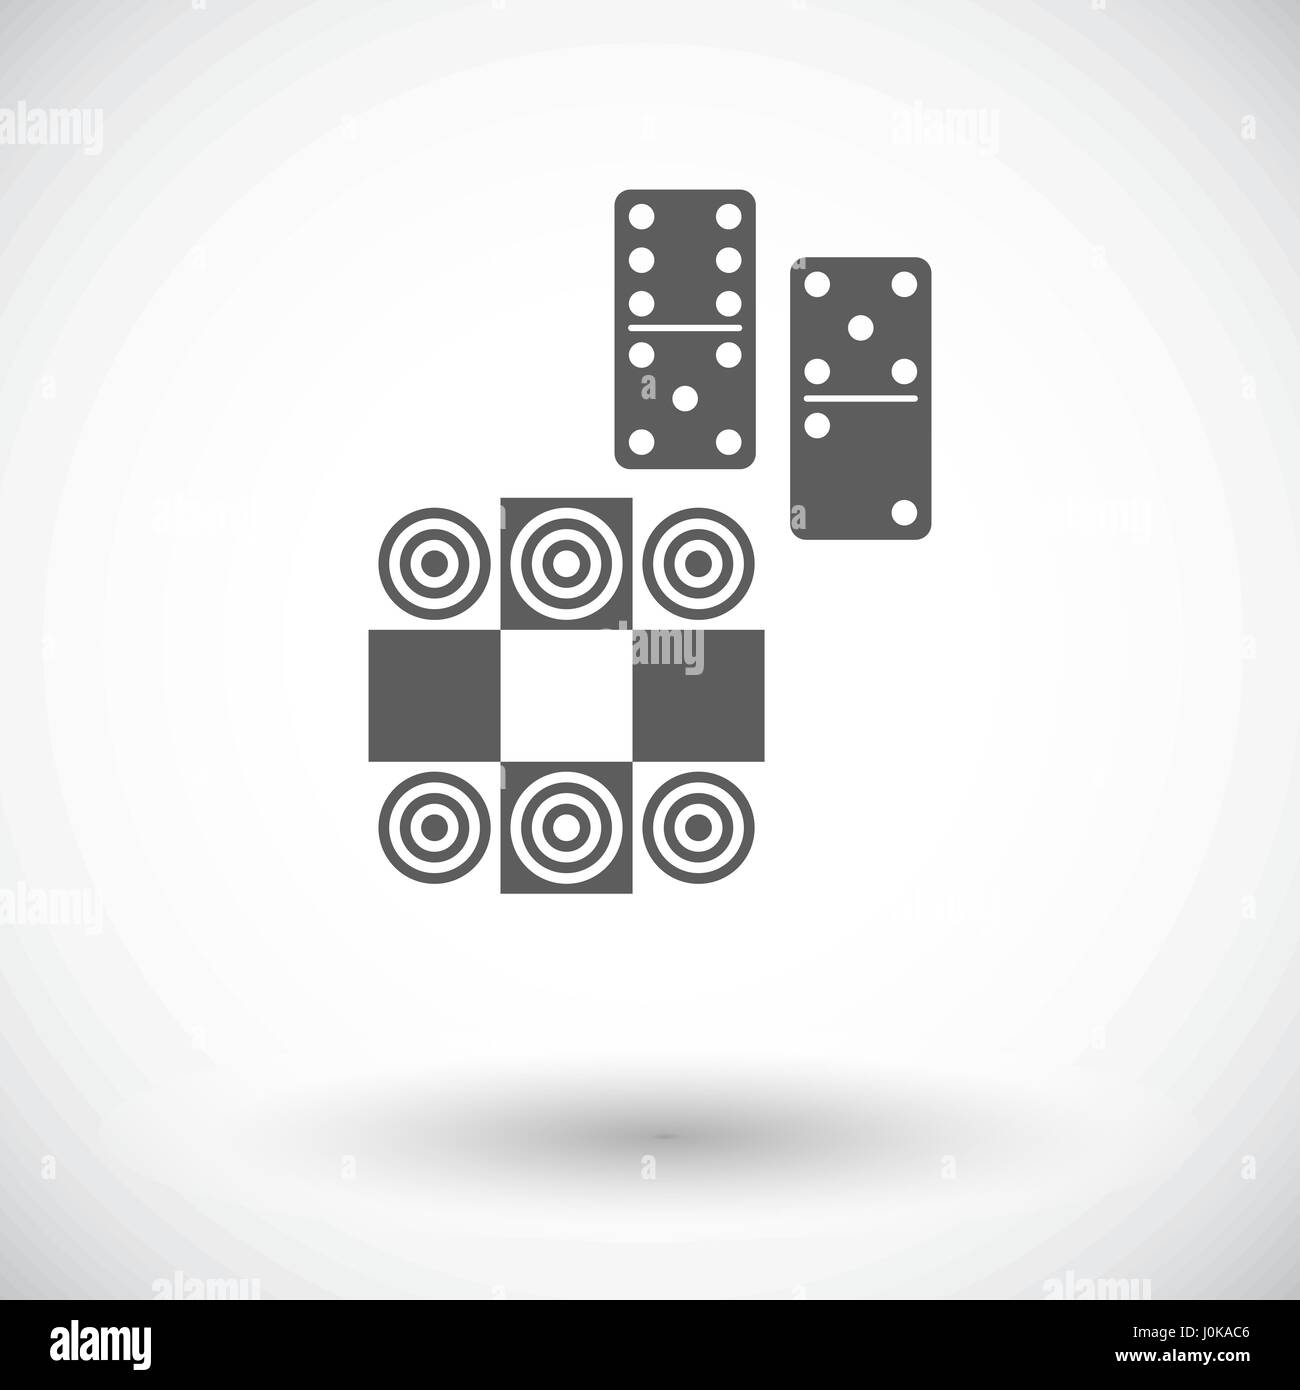 Table games - Stock Vector